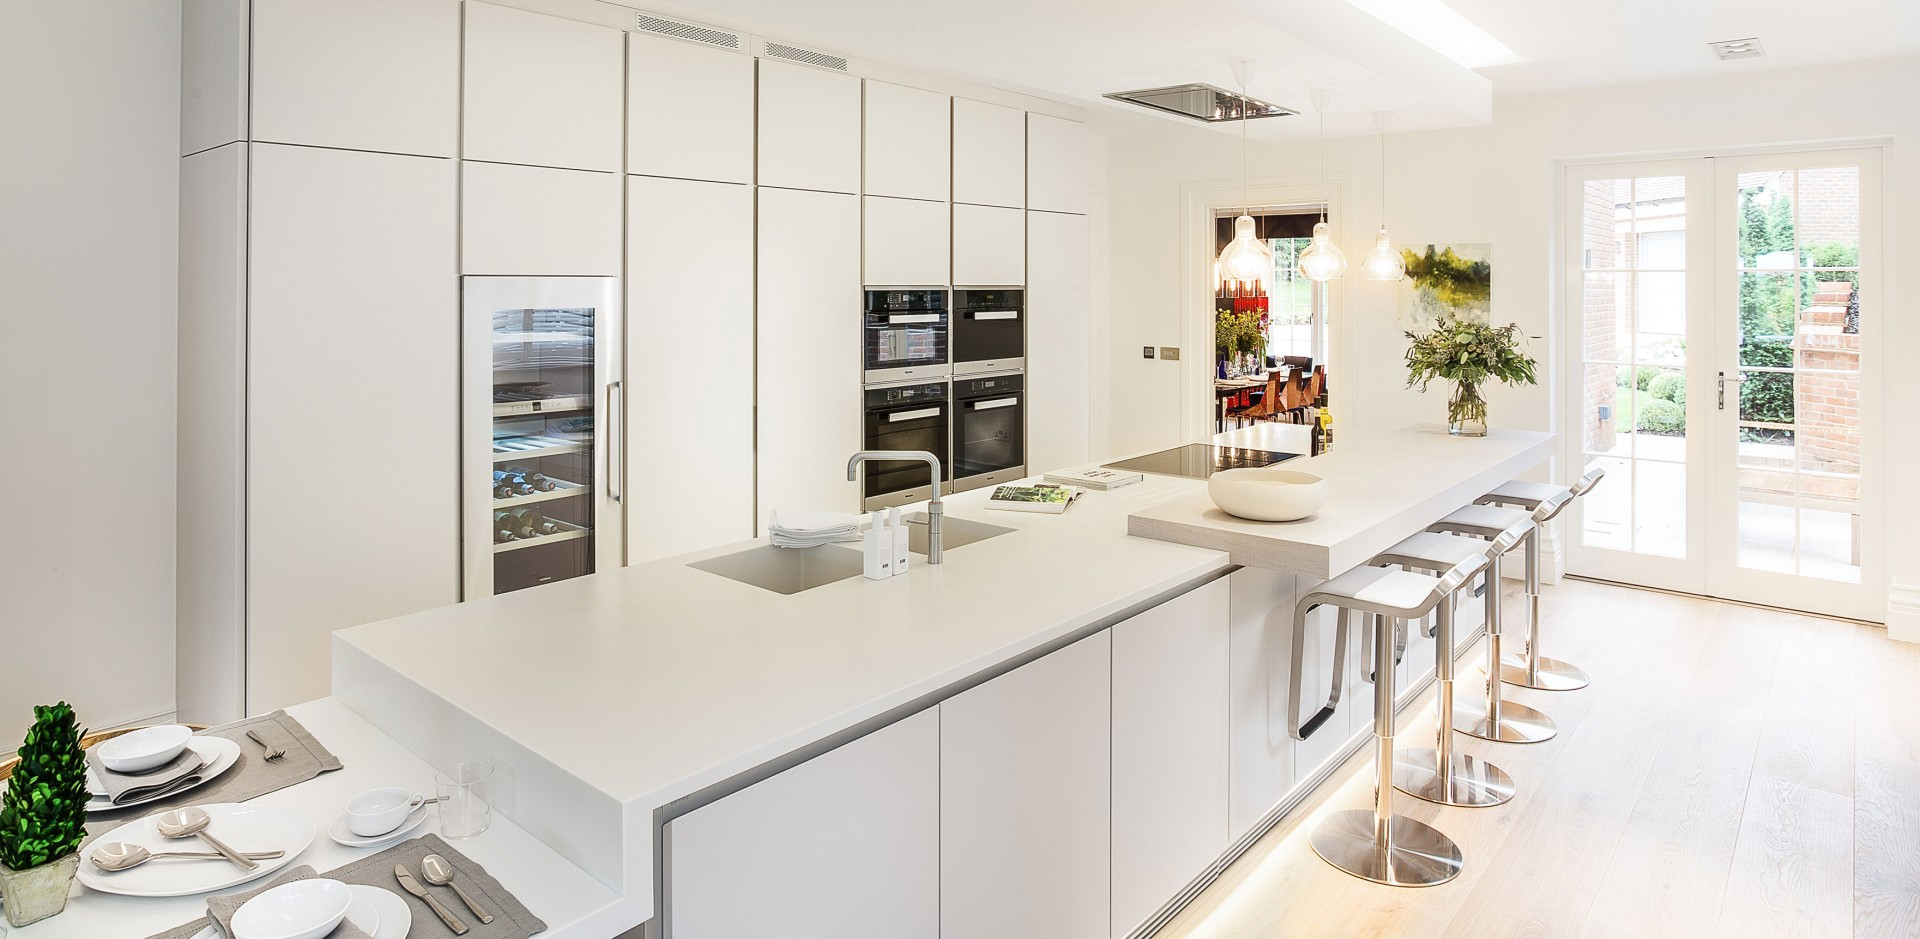 Corian Kitchens | Counter Production Ltd - 30 years Corian specialist